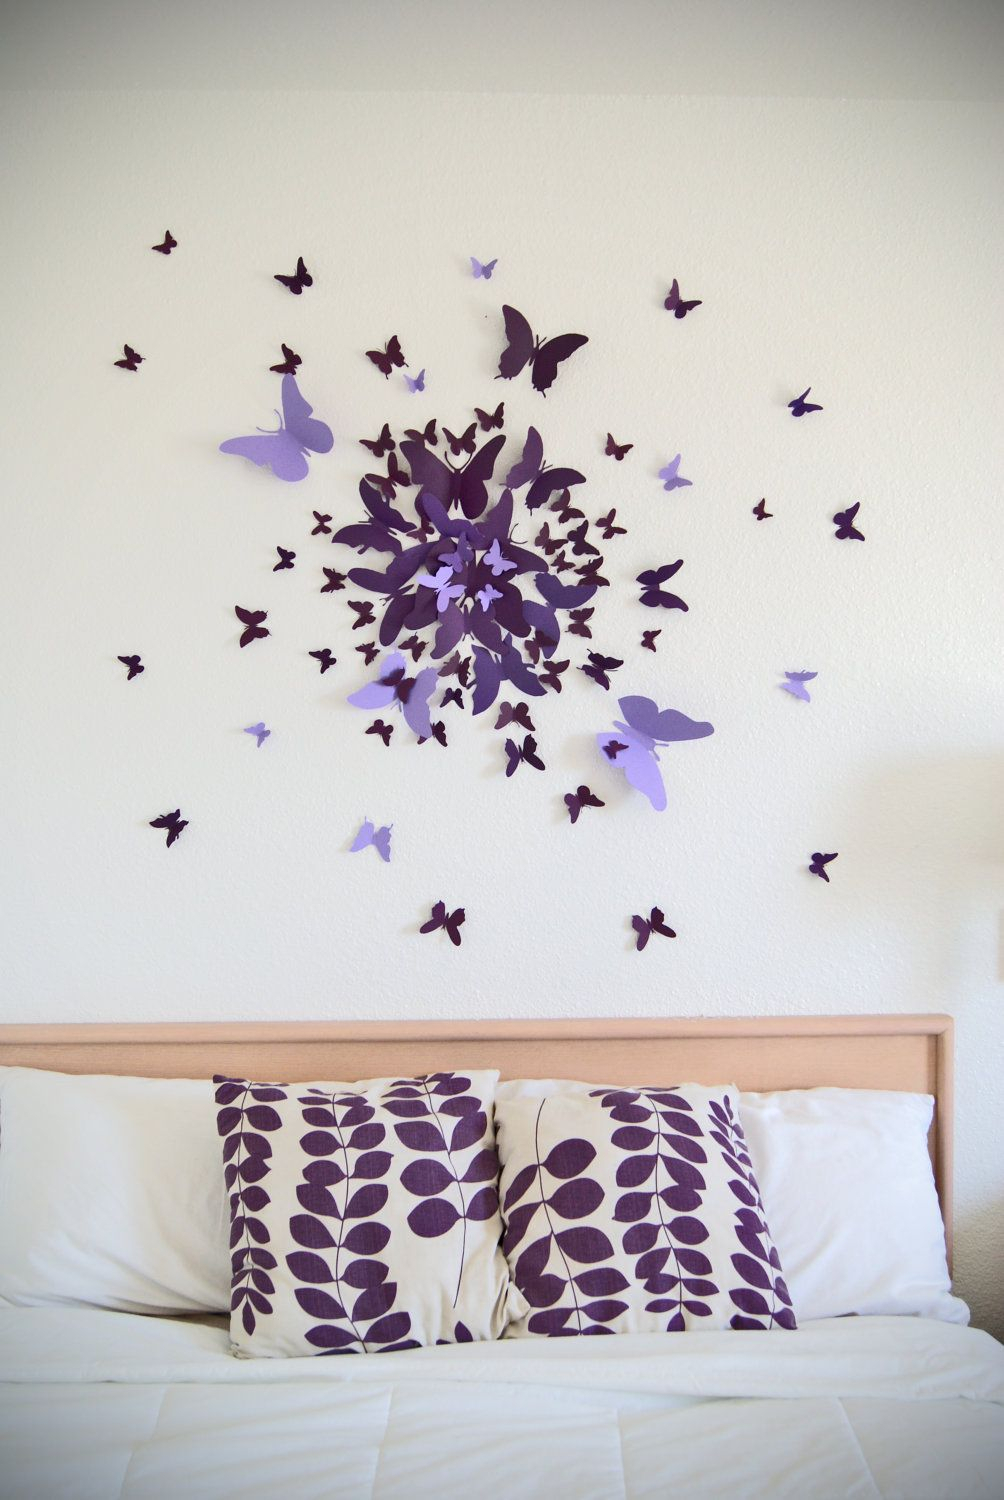 3D Butterfly Wall Art Decal Set Of 70 In Purple, Paper with American Pride 3D Wall Decor (Image 1 of 30)